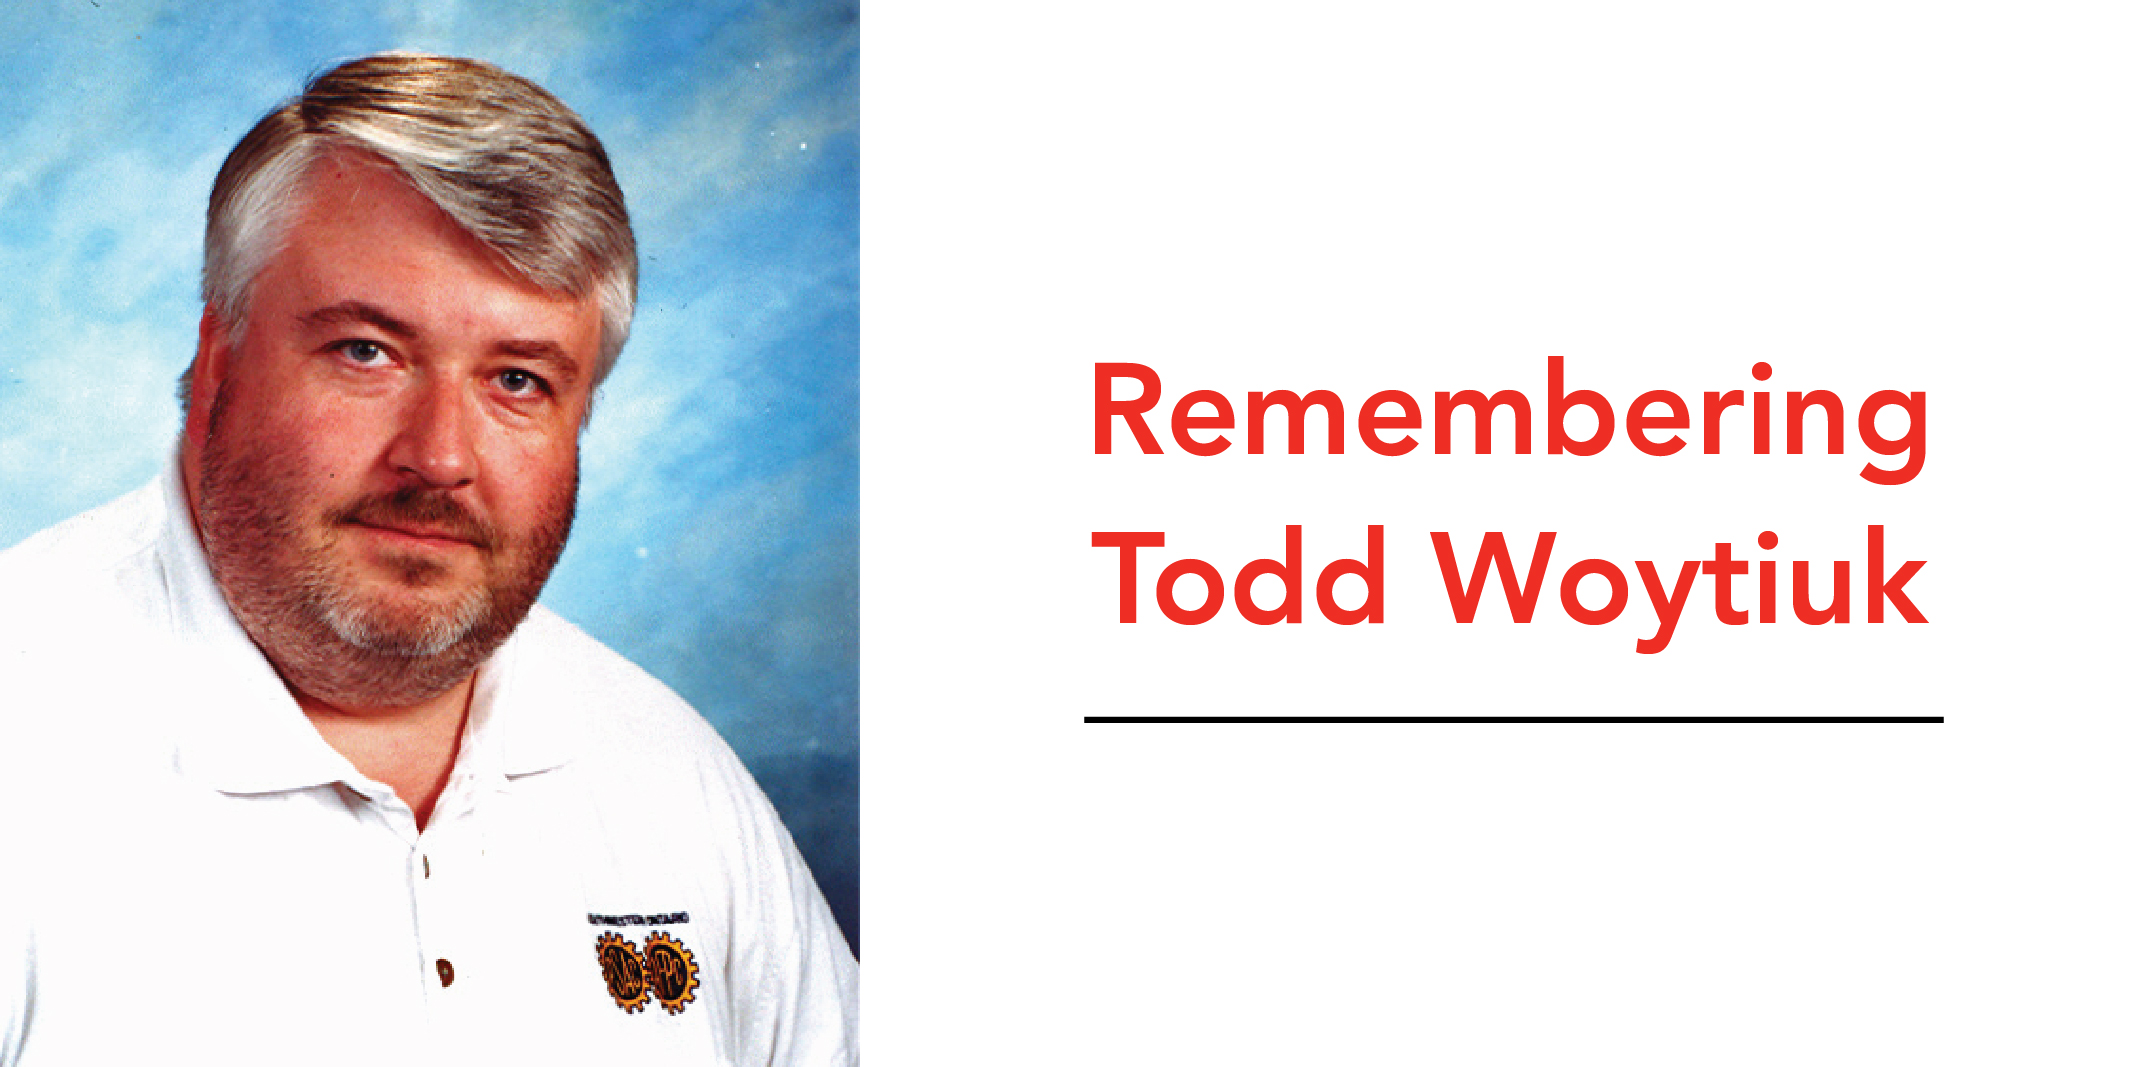 Remembering Todd Woytiuk image